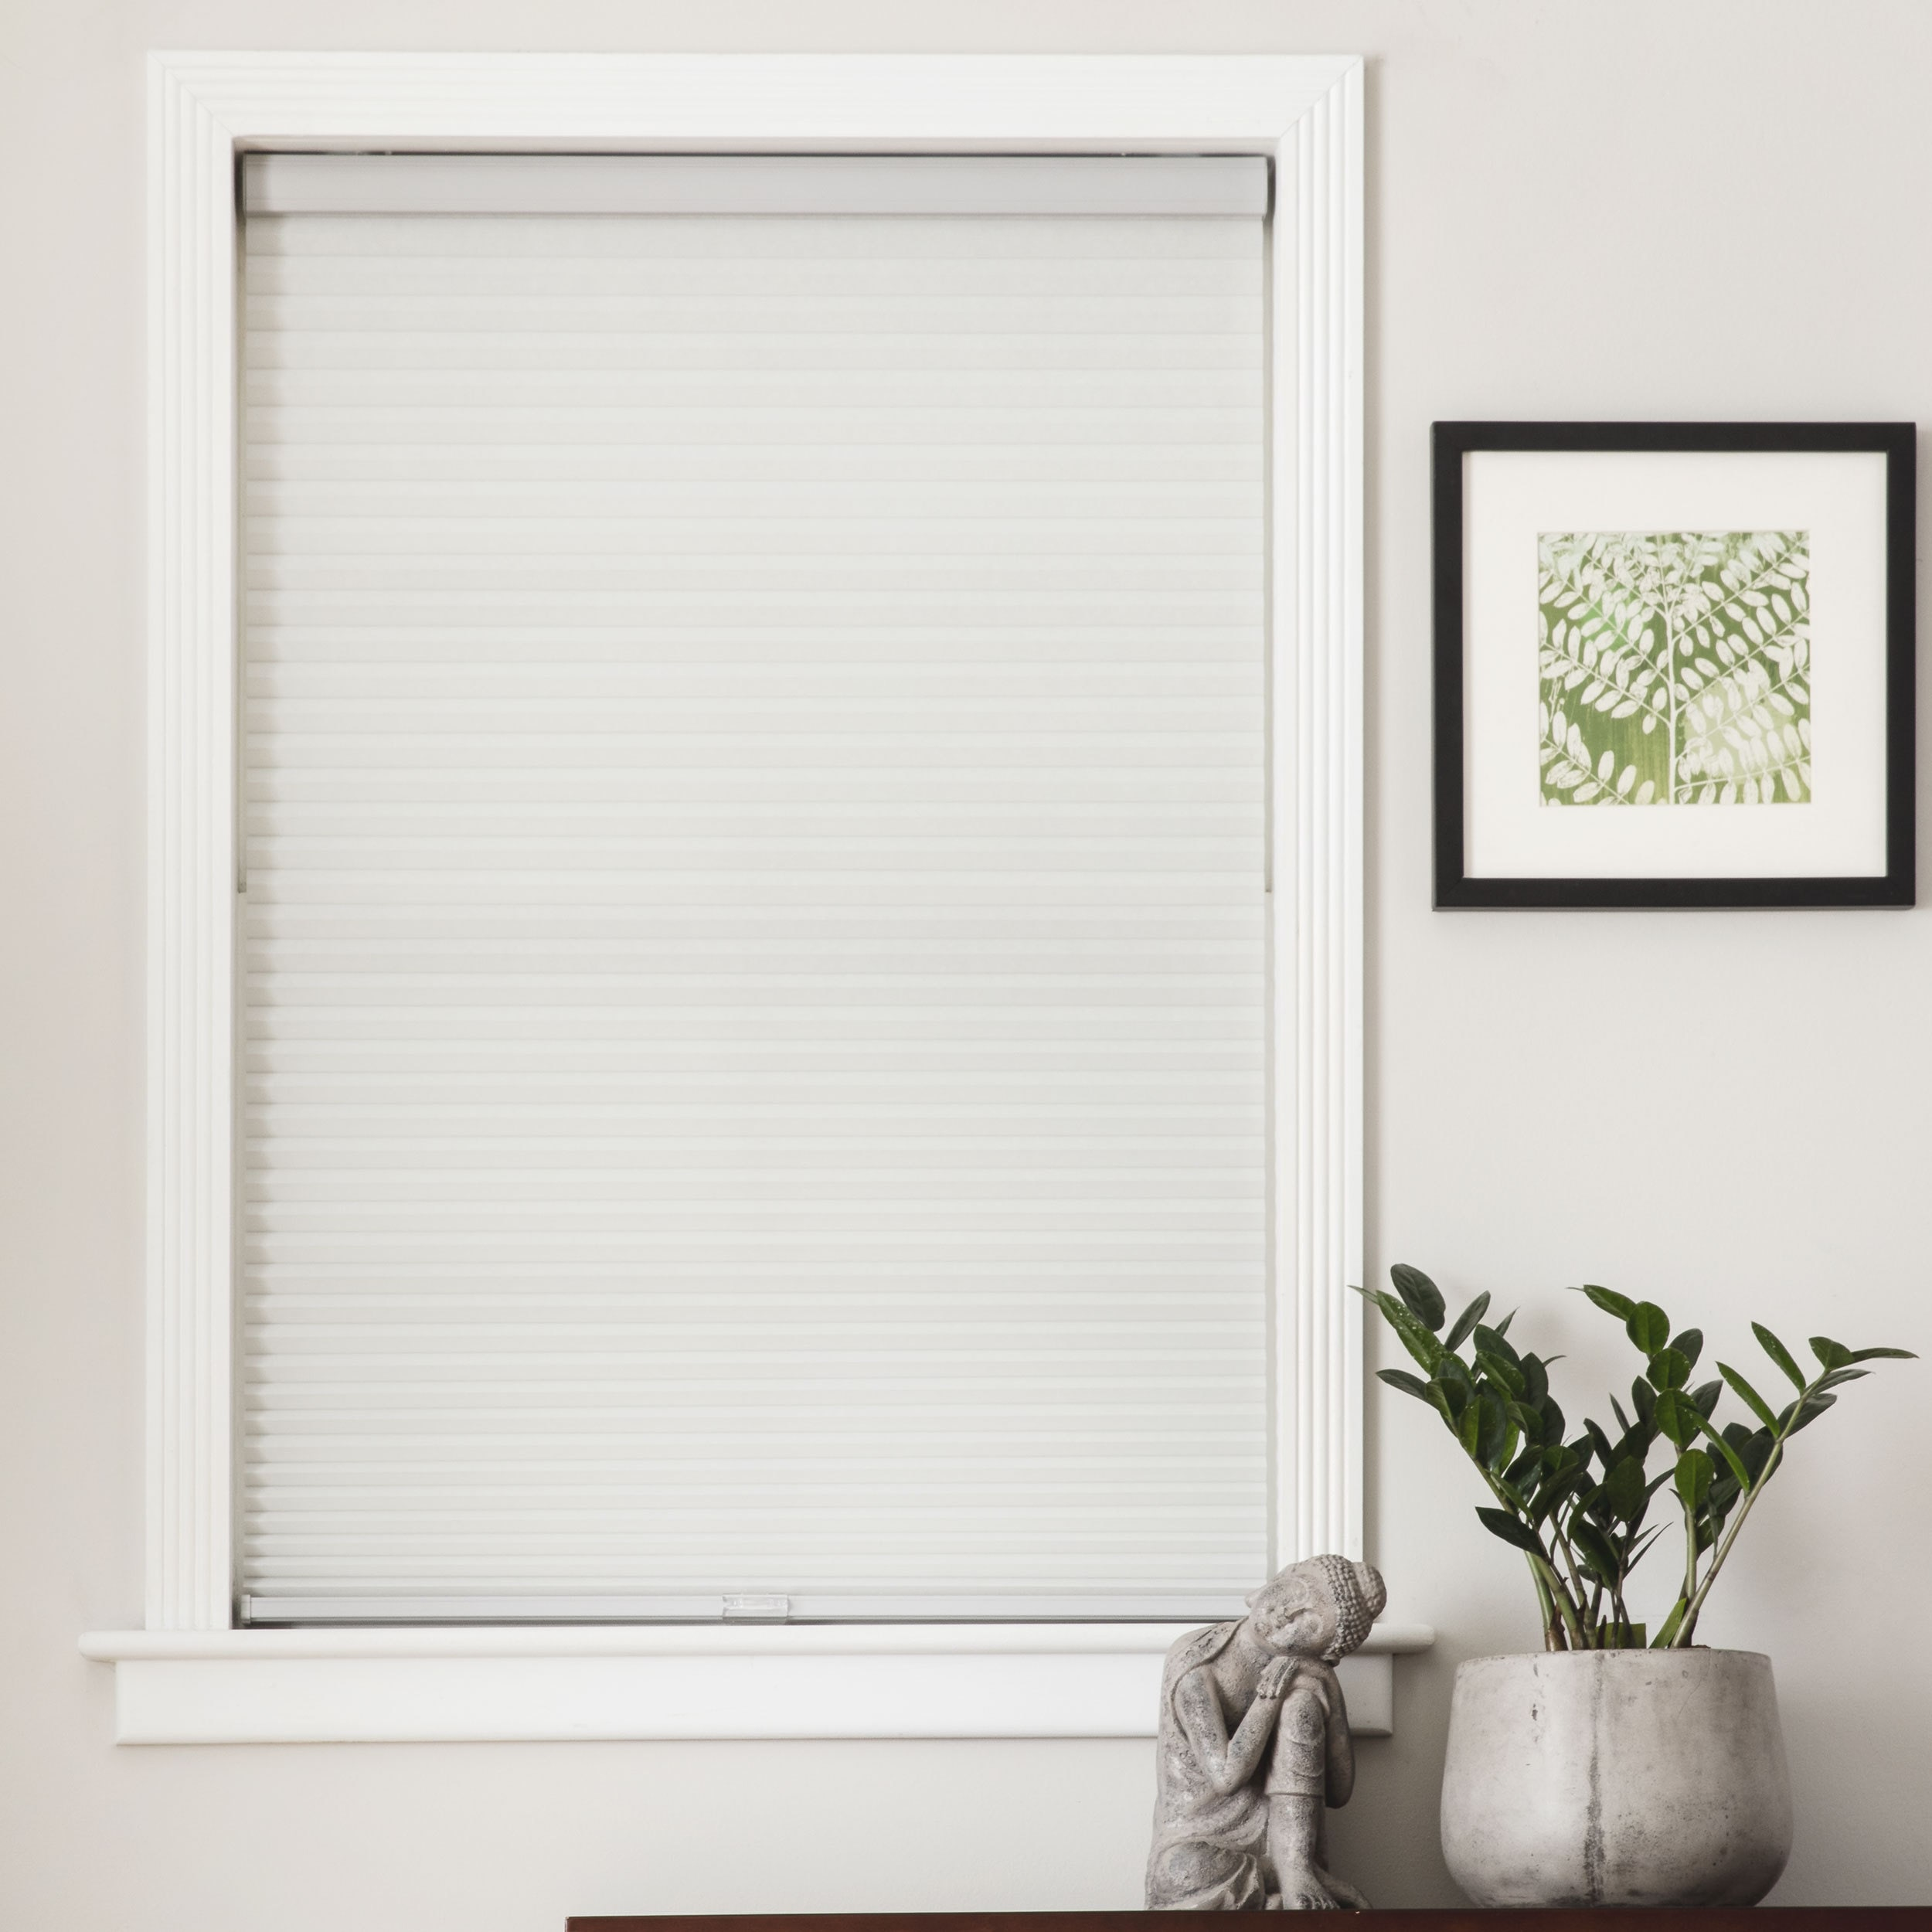 light blinds home overstock arlo on garden fabric lift grey roman filtering over shipping free orders shade cordless product